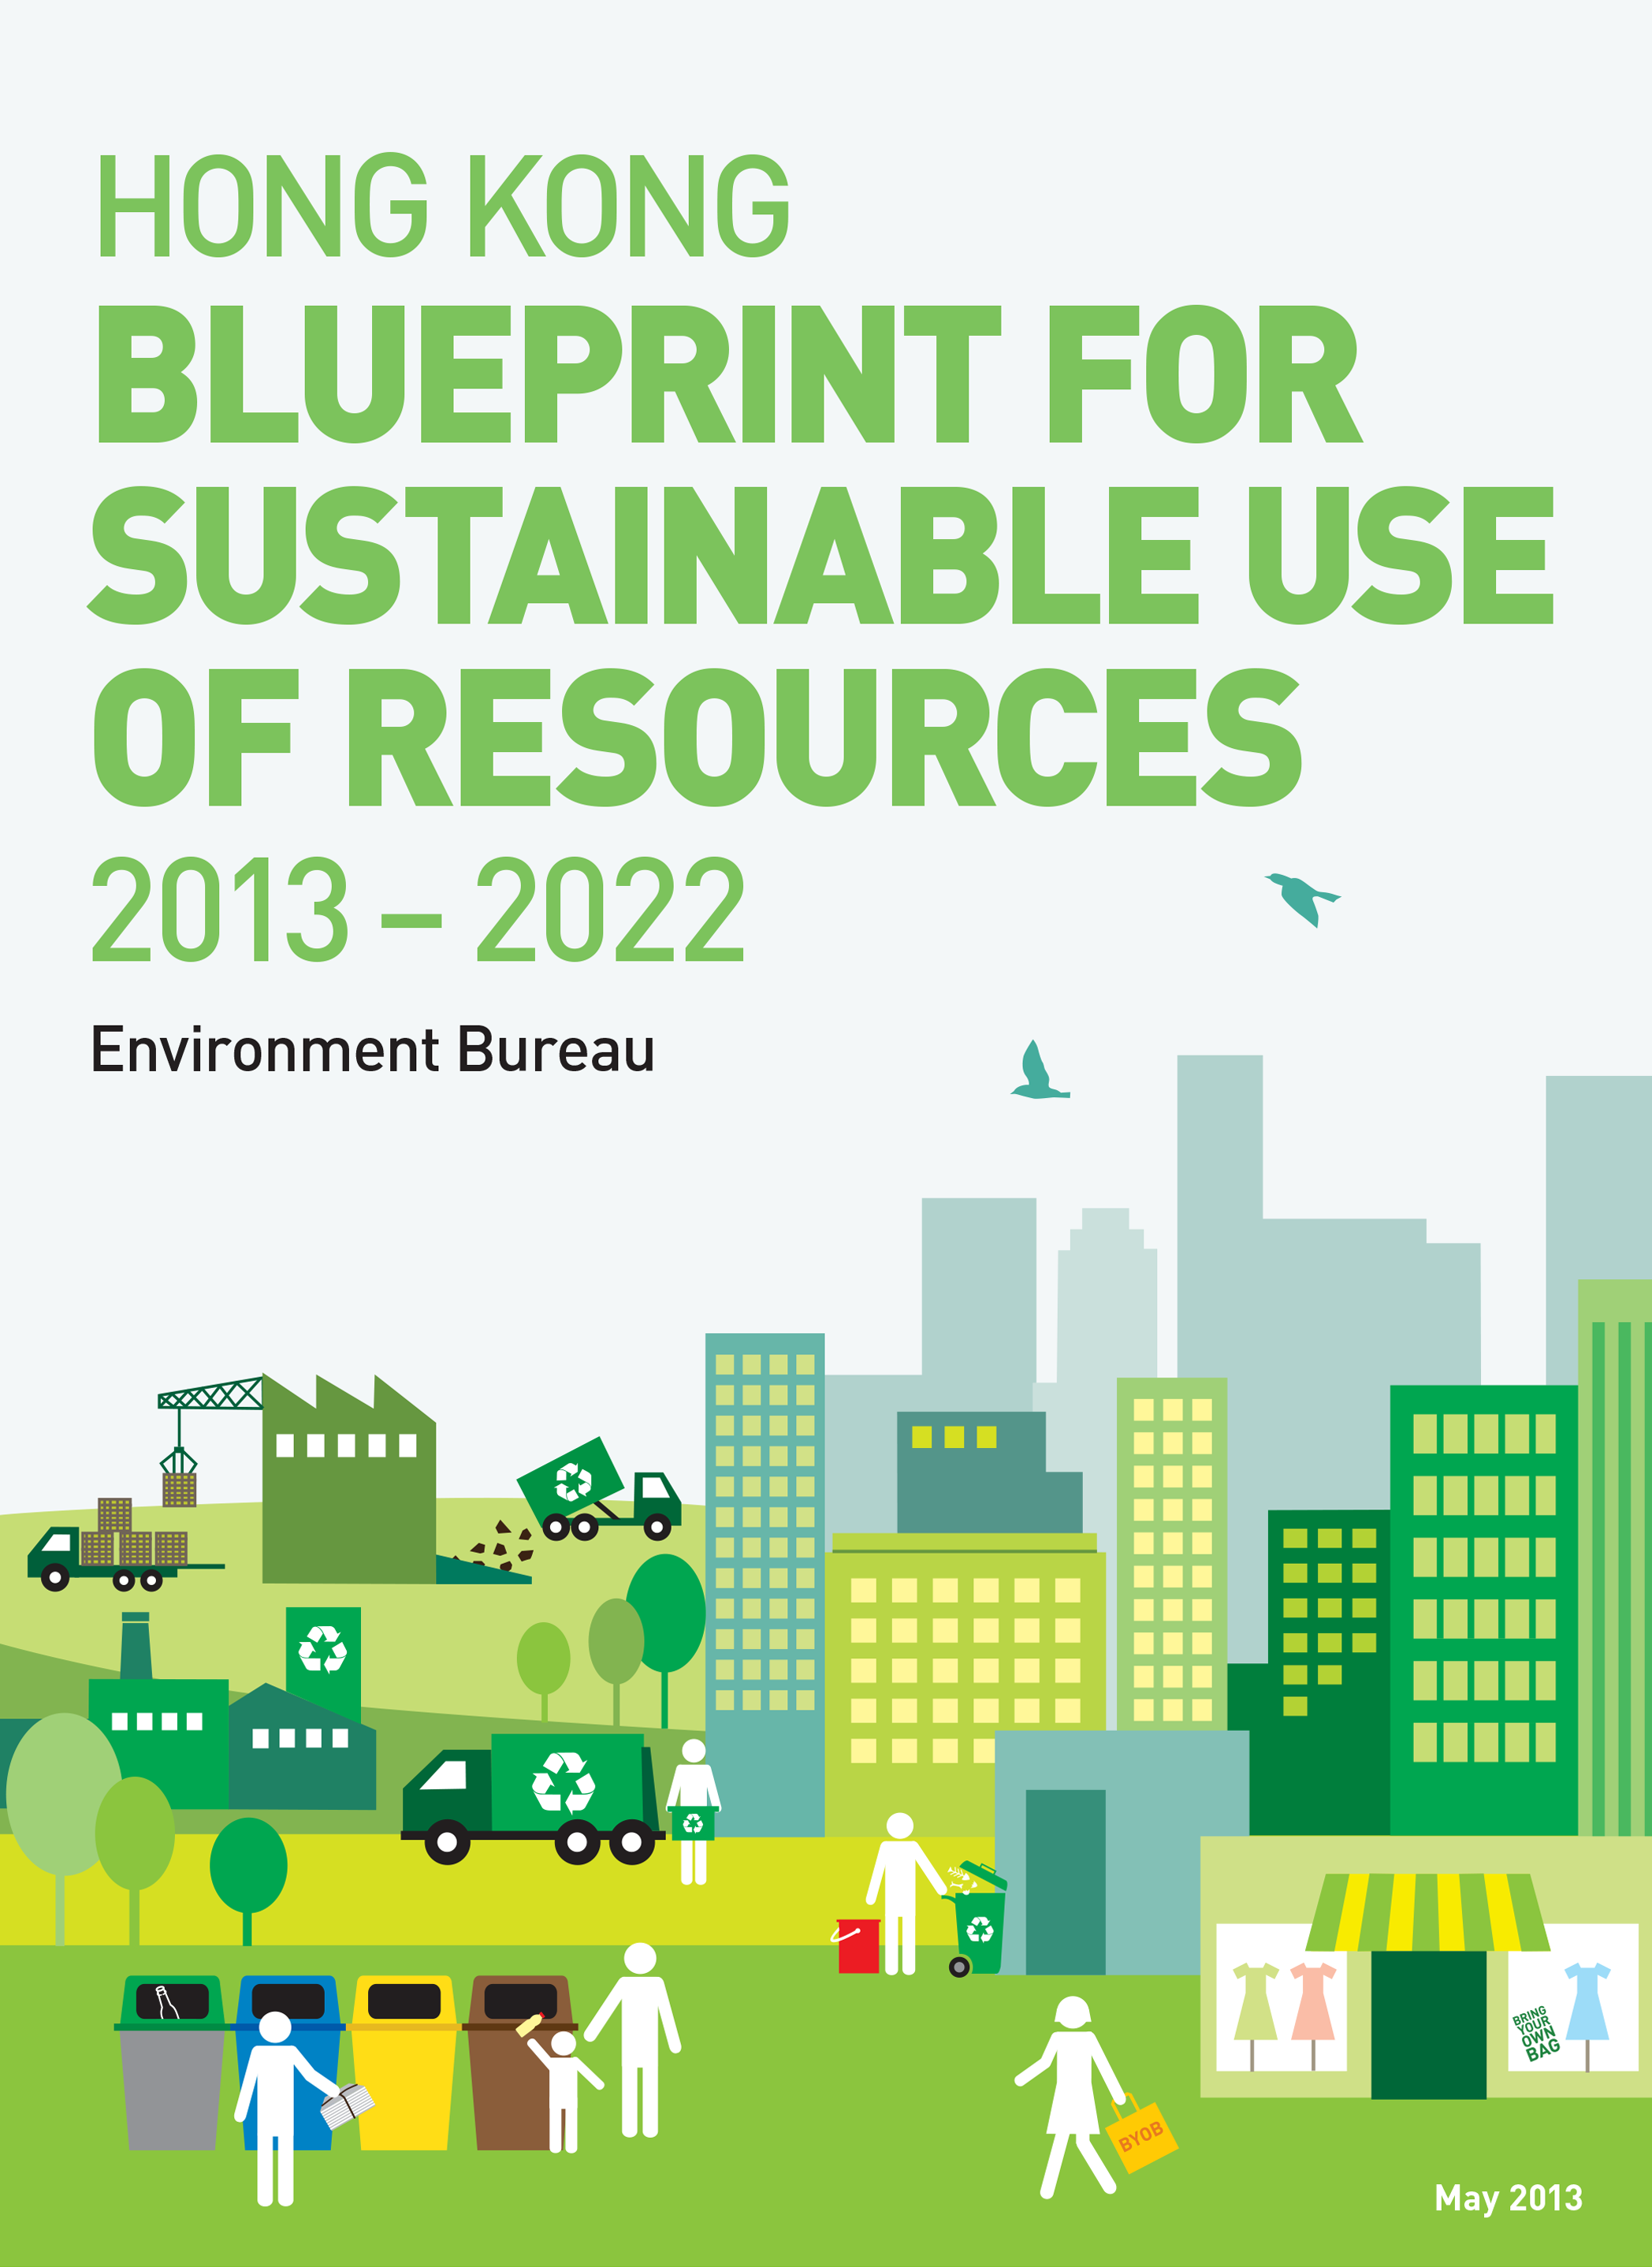 Hong Kong Blueprint for Sustainable Use of Resources 2013 - 2022